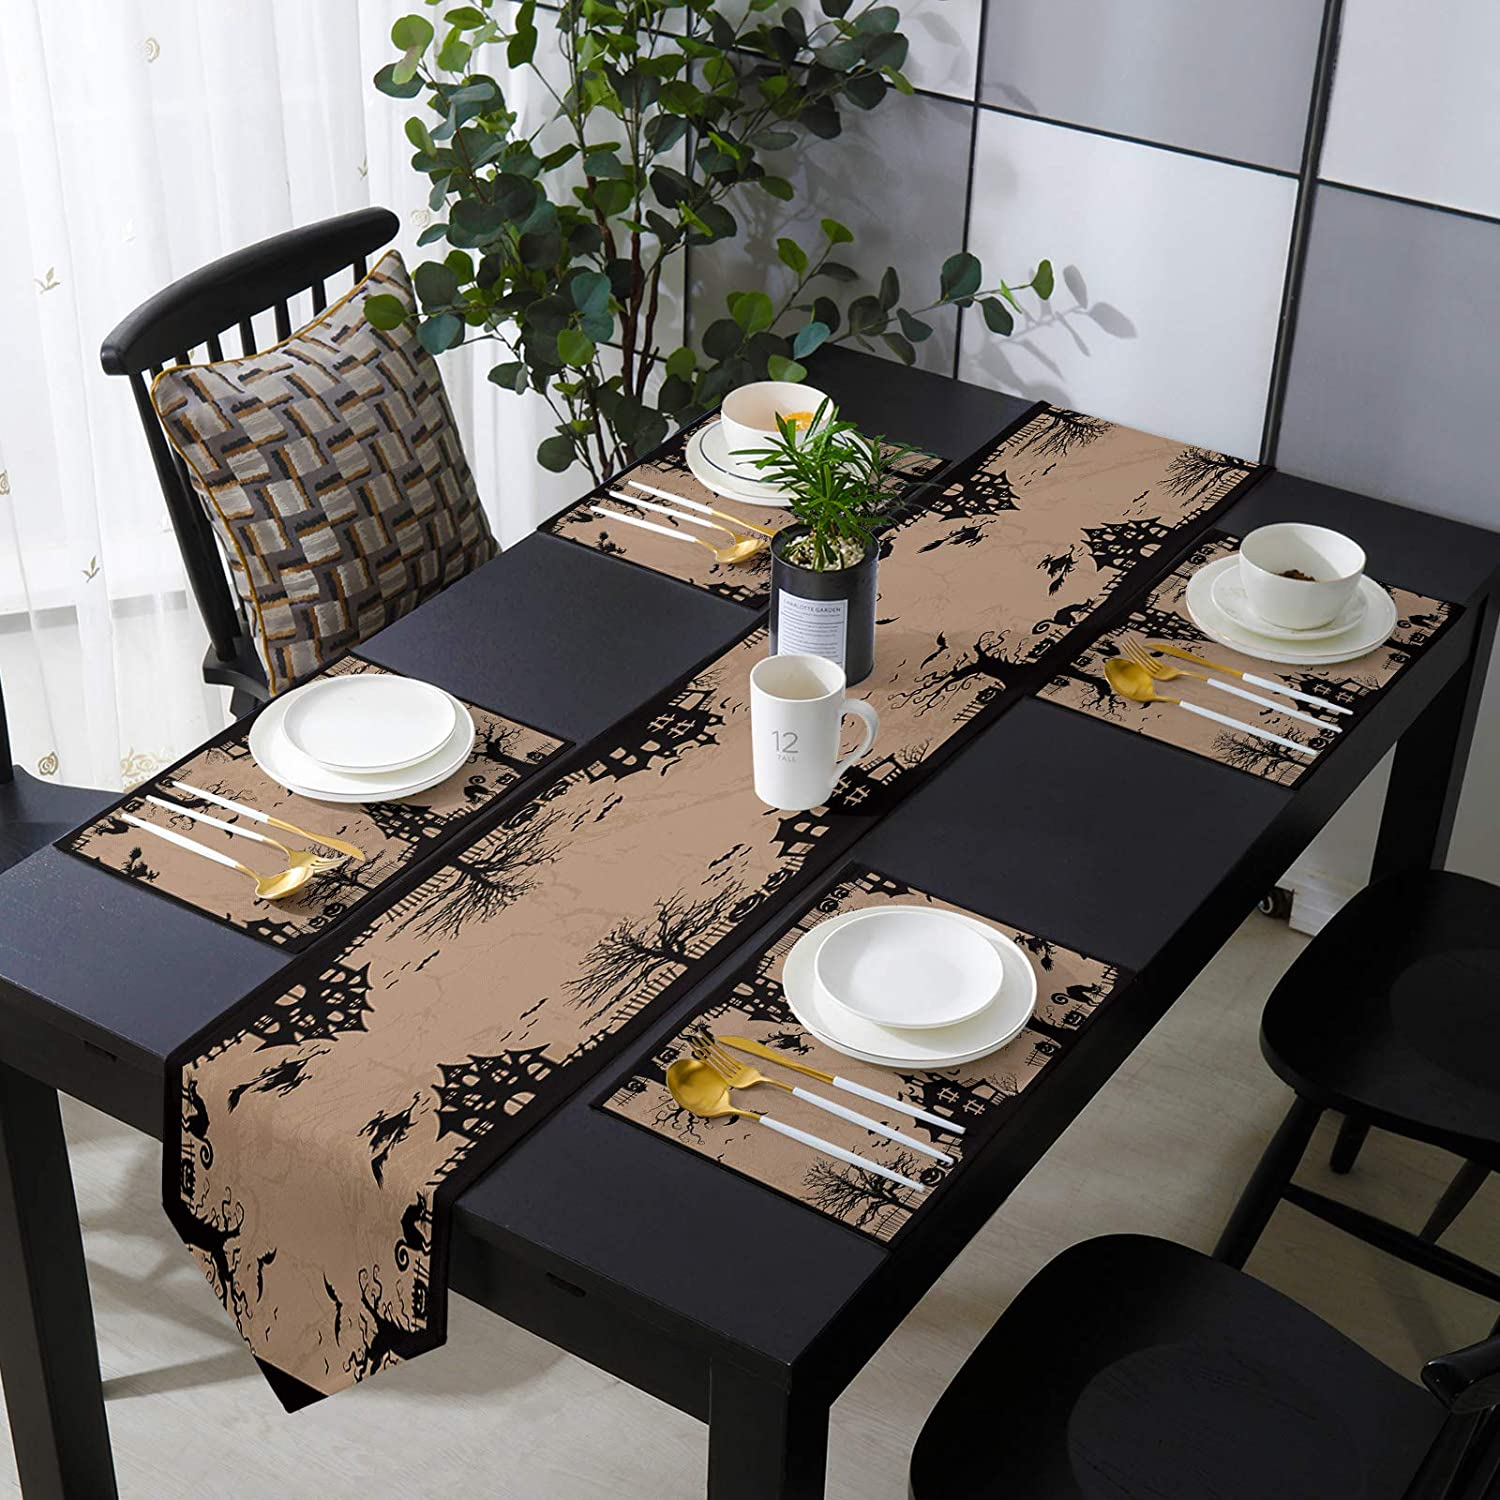 Placemats Luxury with Table Runner Set Count Halloween for Dining Many popular brands